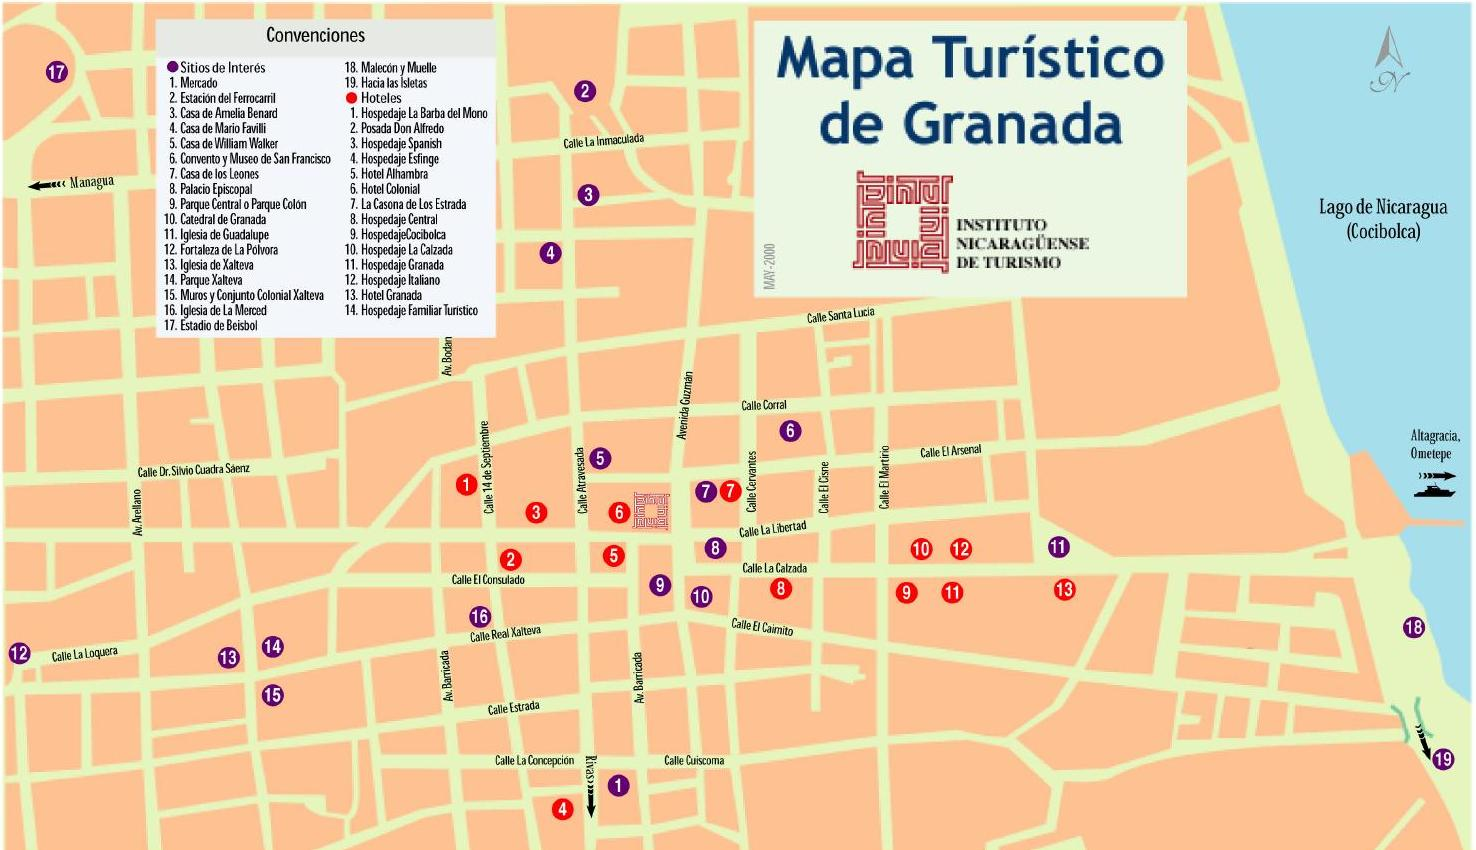 Granada Nicaragua Tourist Map – Nicaragua Tourist Attractions Map